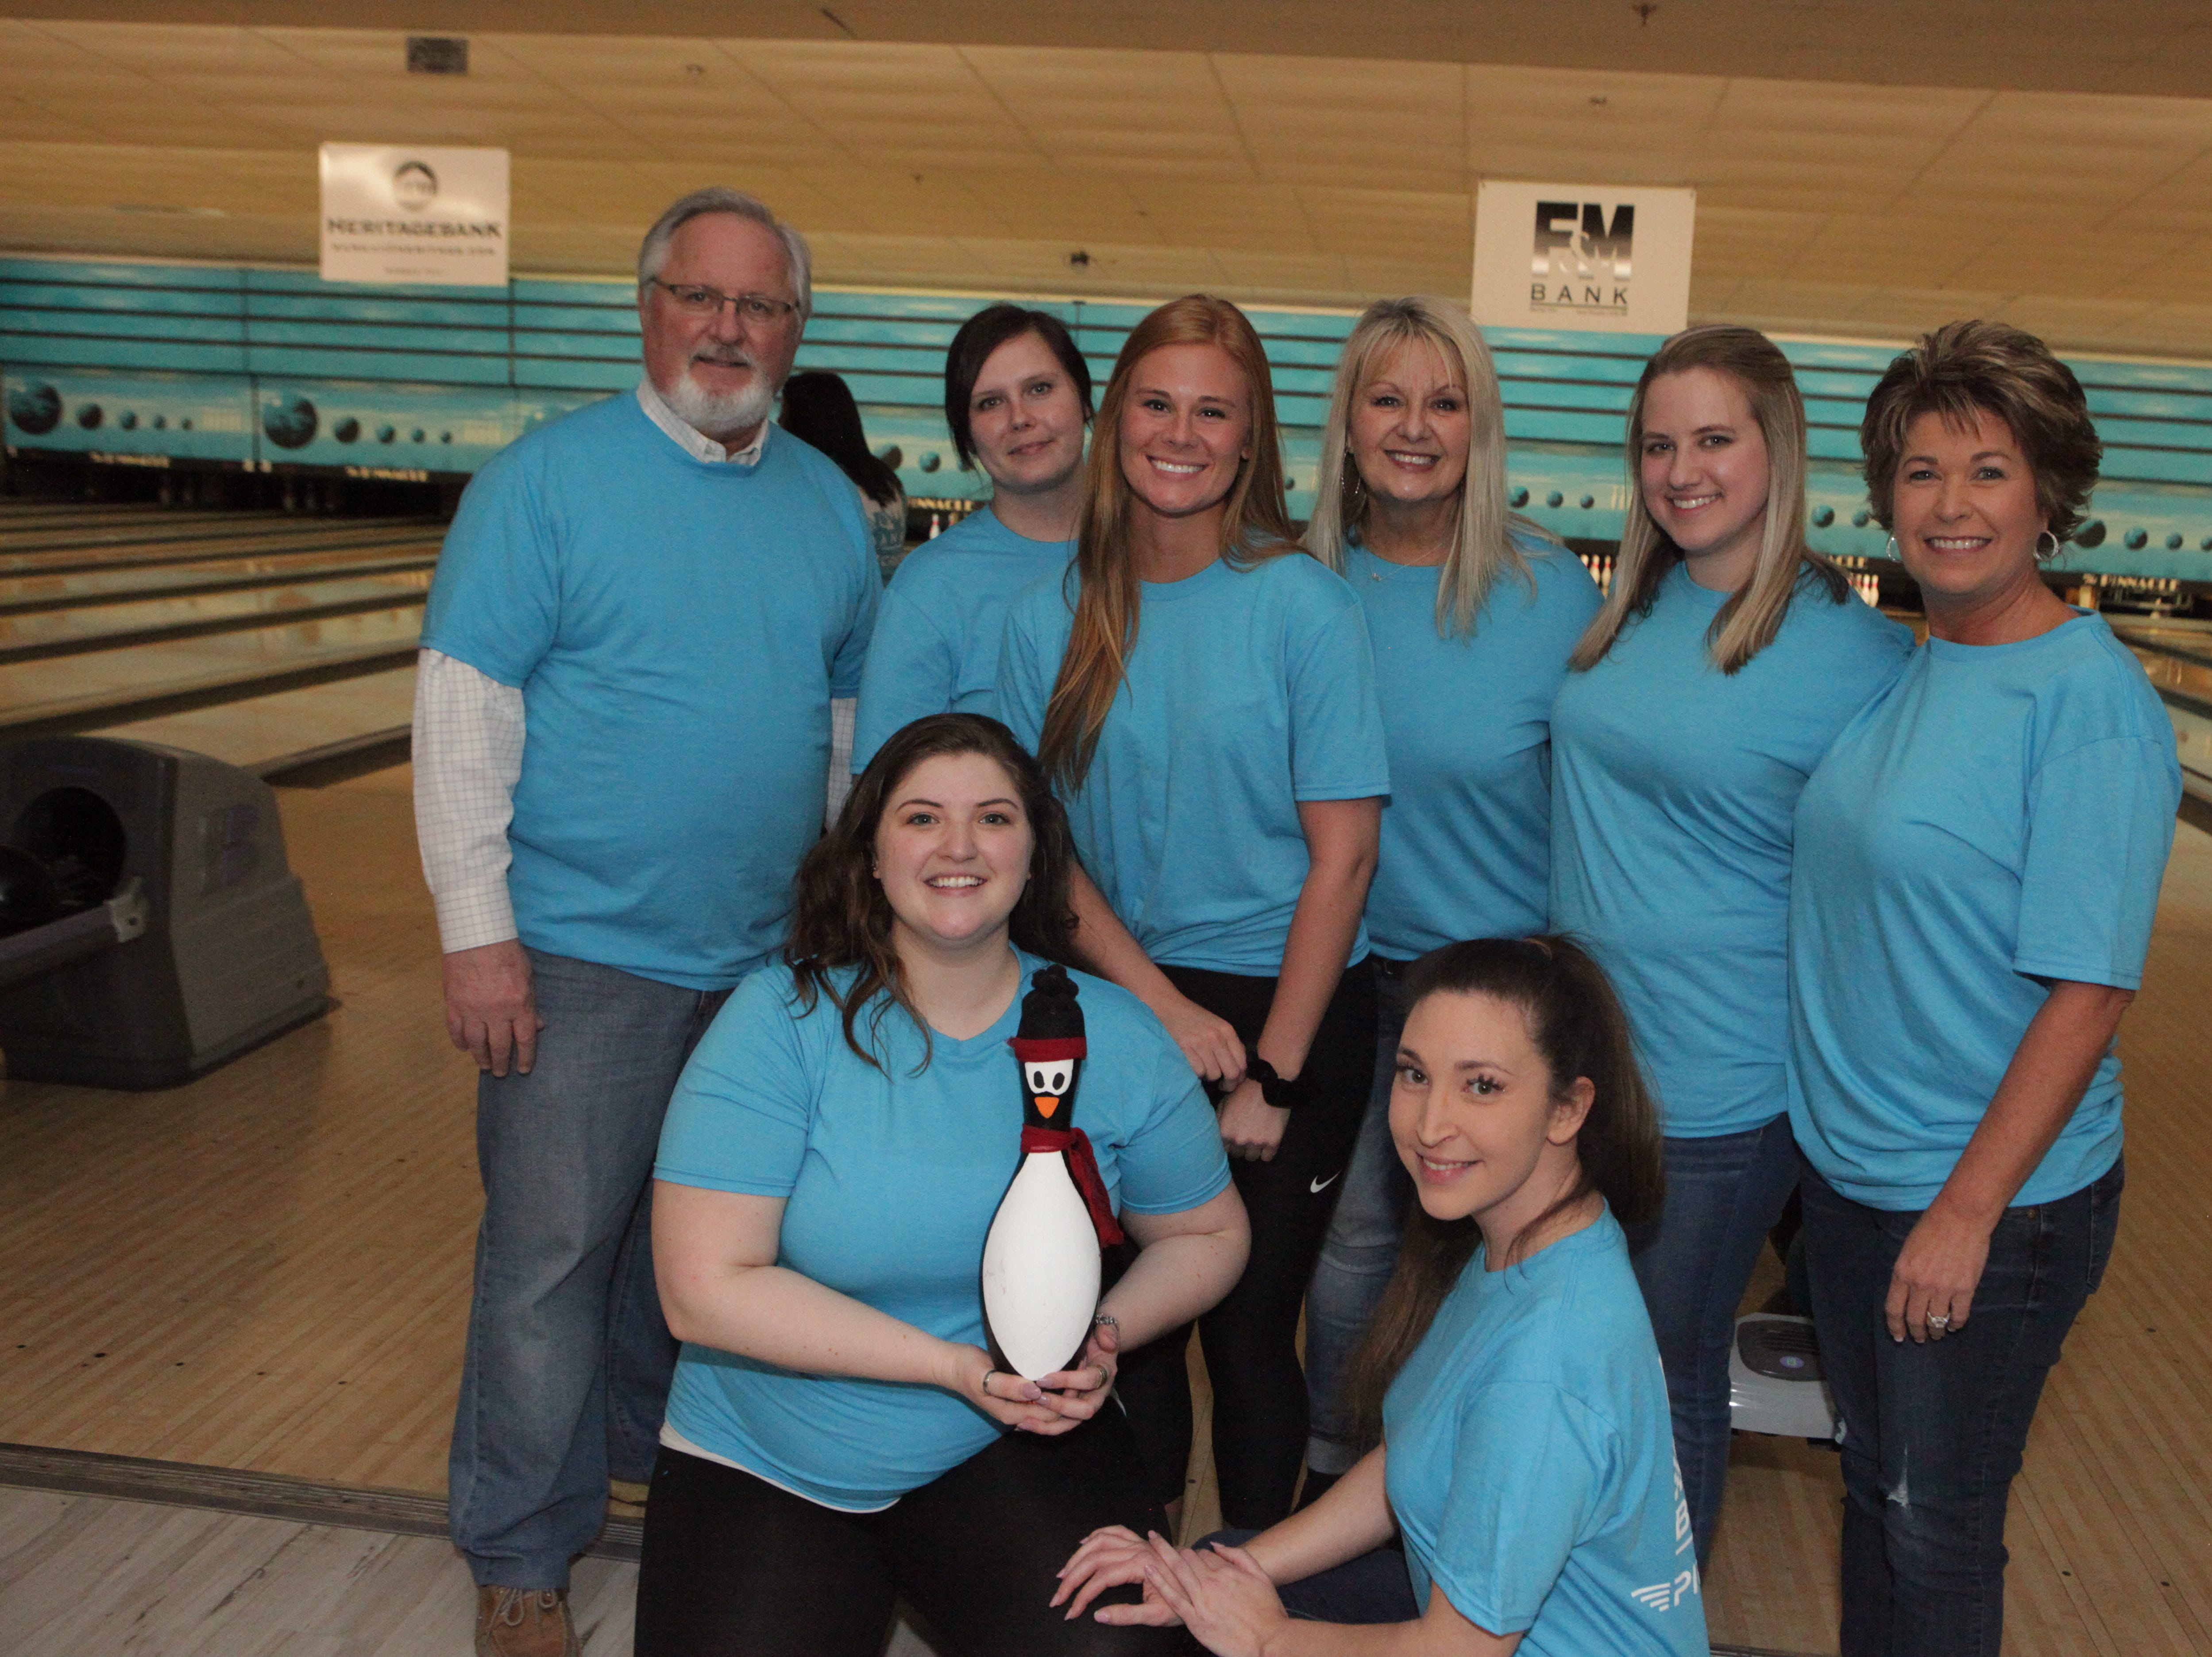 F&M Bank's Sango branch raised more than $3,050 for the Big Brothers Big Sisters 2019 Bankers Challenge at the Pinnacle Family Entertainment Center on Tuesday, March 12, 2019.